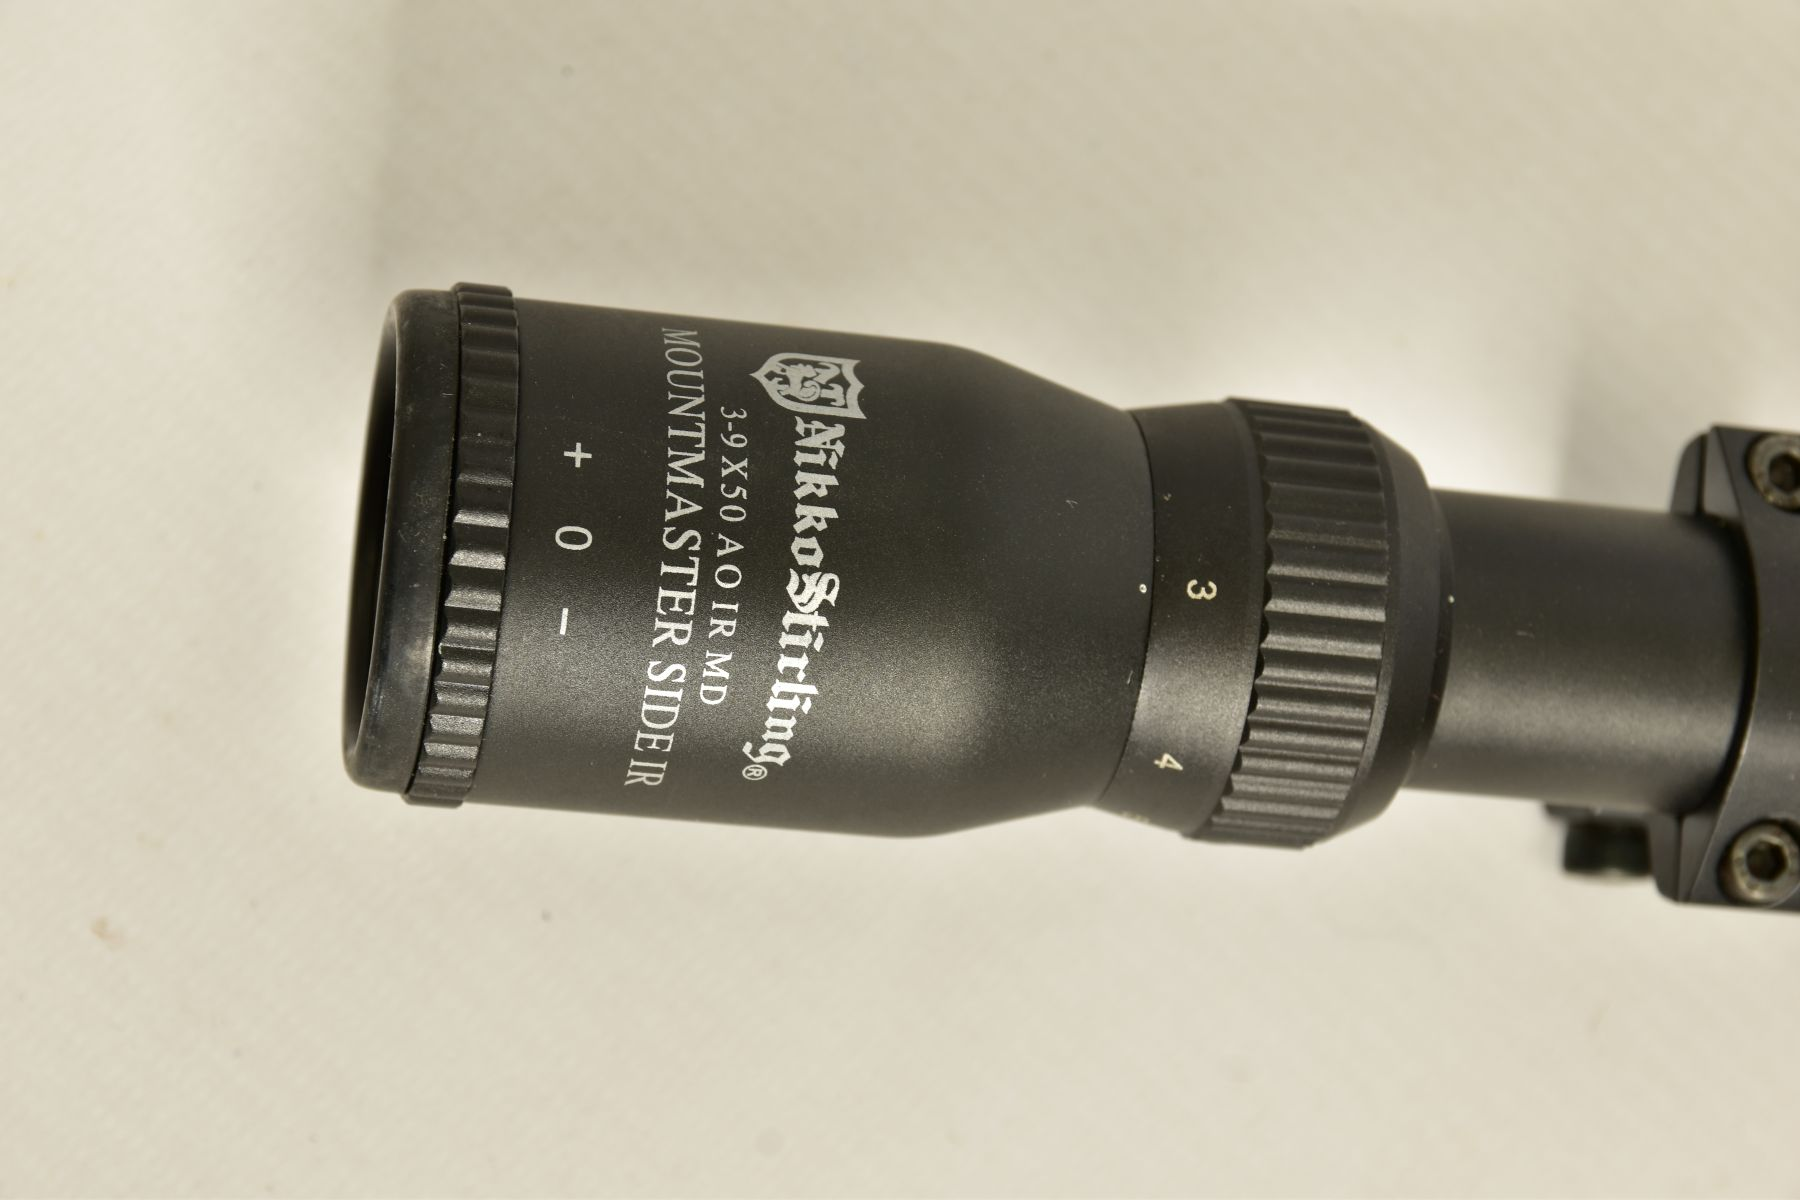 A NIKO STIRLING 3.9 X 50 RIFLE SCOPE and mounts, it appears to be in unused condition - Image 3 of 8